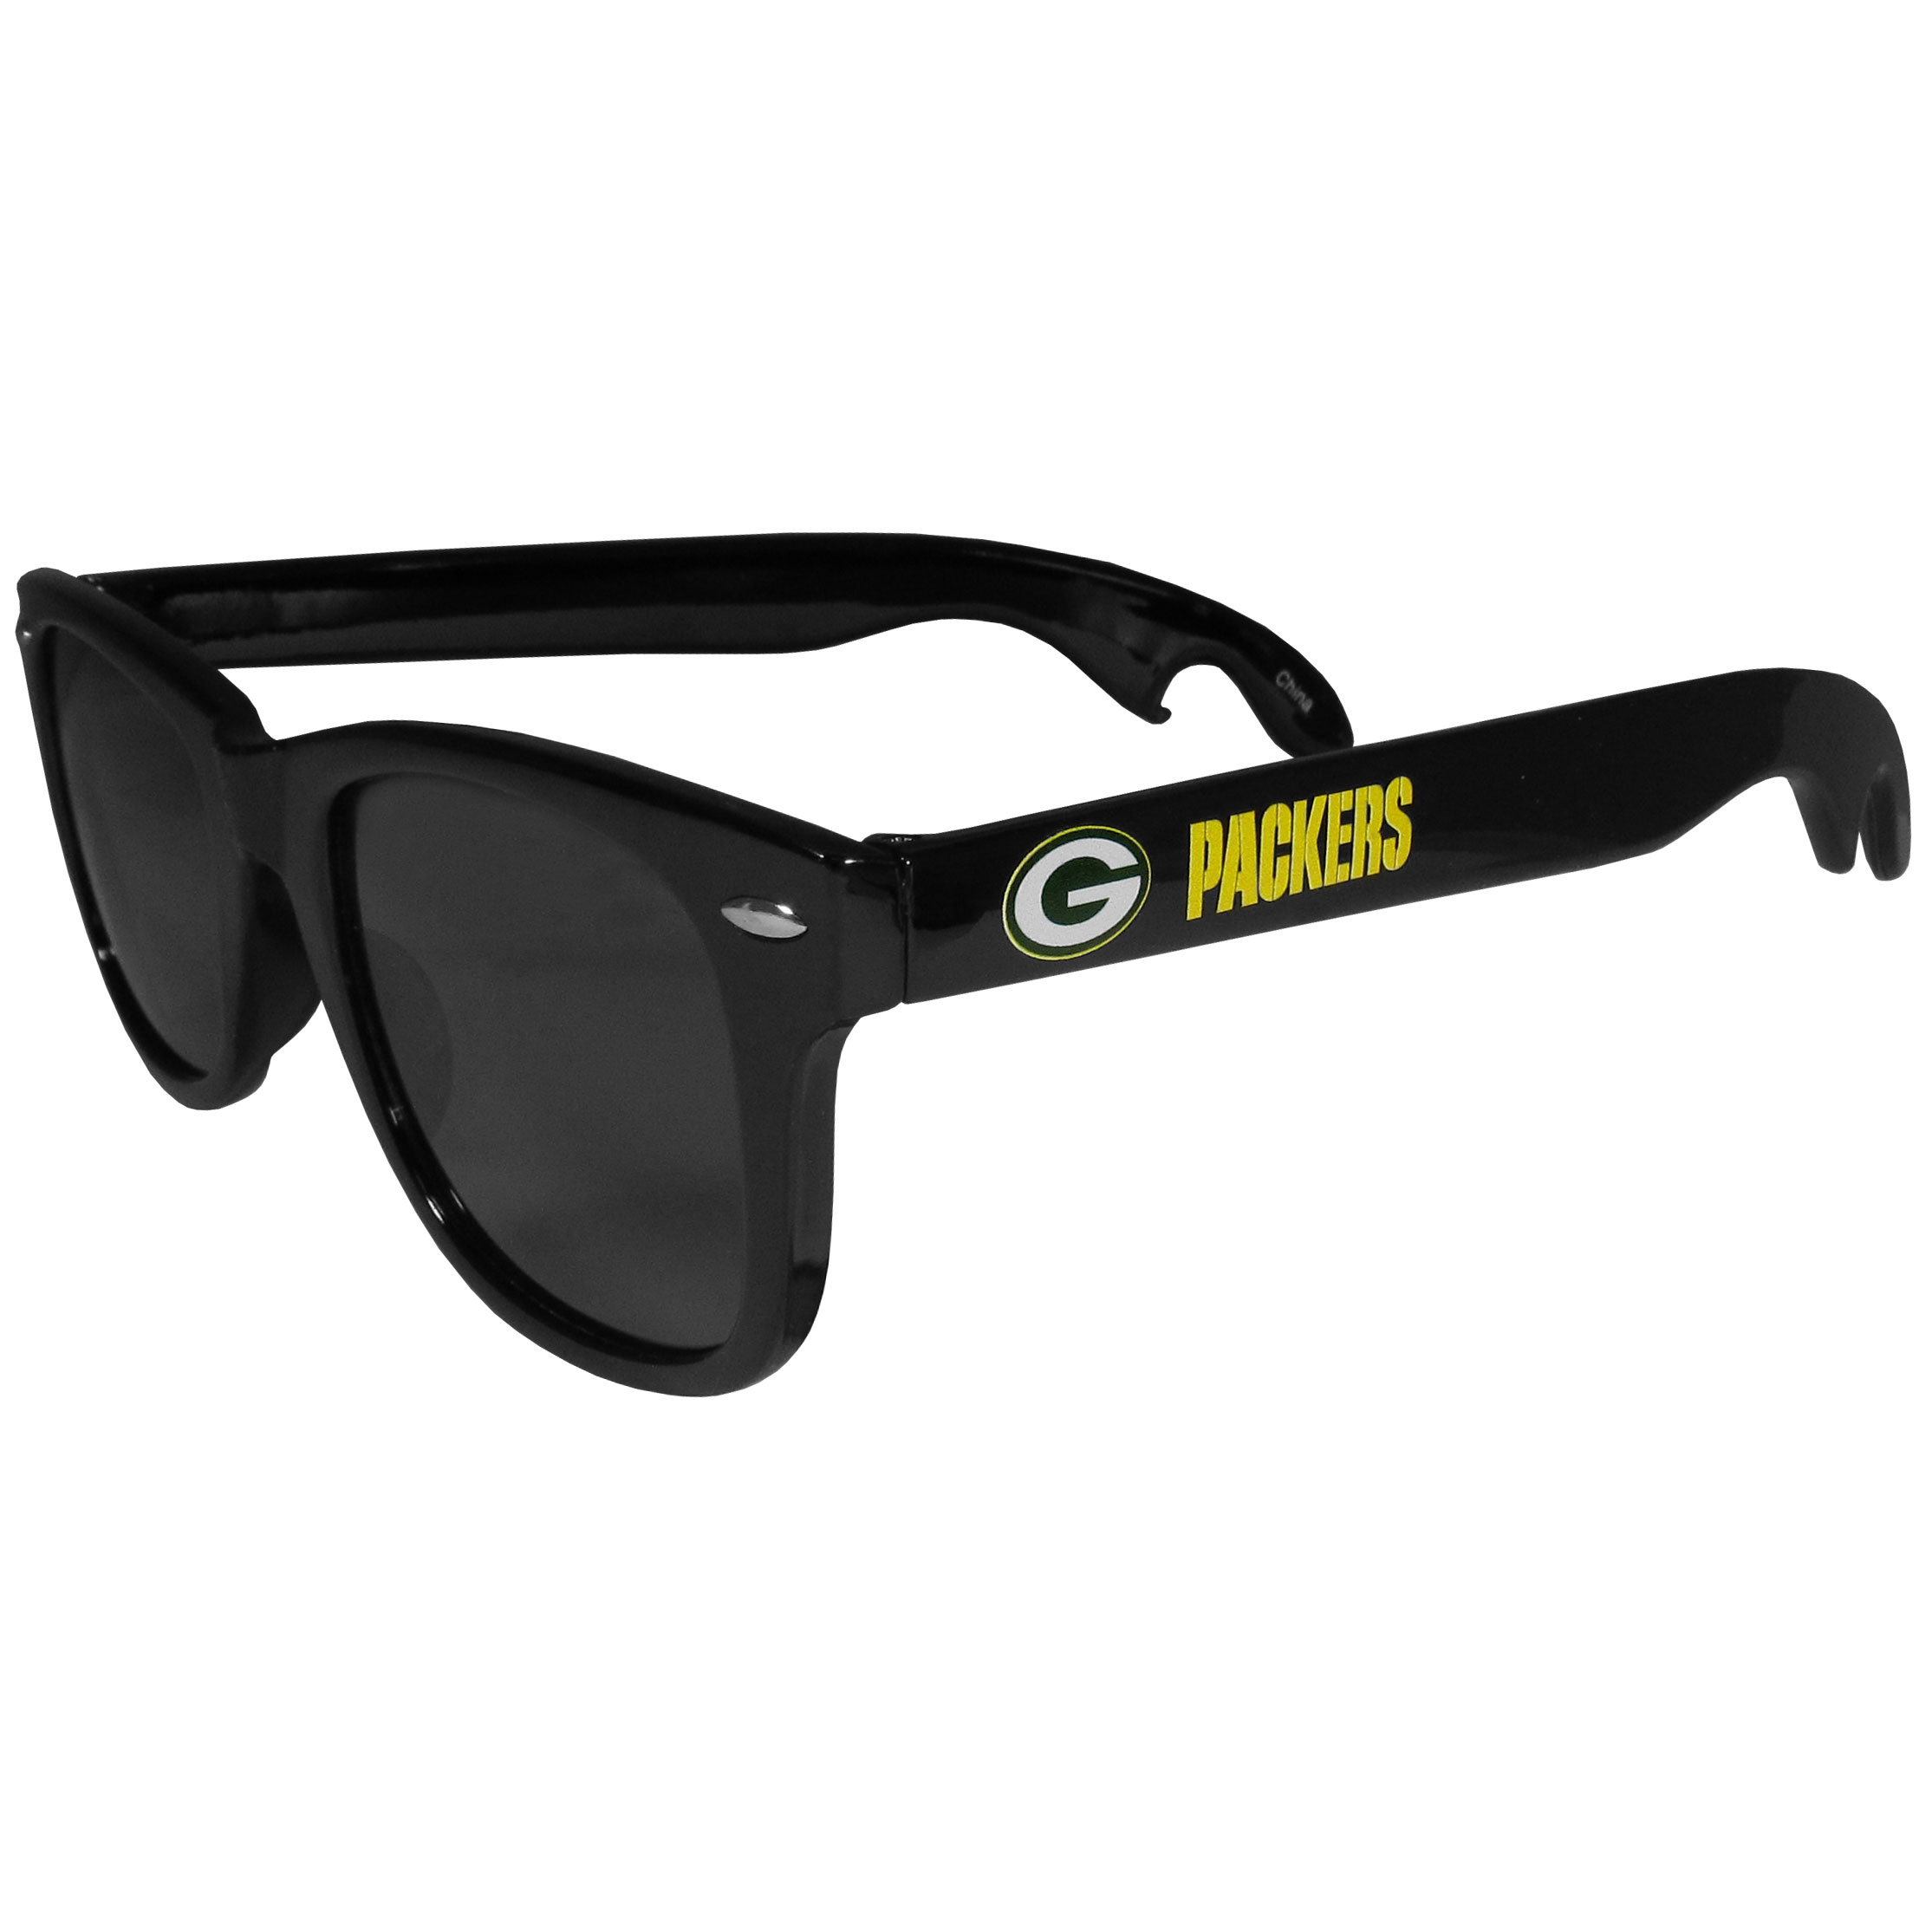 Green Bay Packers Beachfarer Bottle Opener Sunglasses - Seriously, these sunglasses open bottles! Keep the party going with these amazing Green Bay Packers bottle opener sunglasses. The stylish retro frames feature team designs on the arms and functional bottle openers on the end of the arms. Whether you are at the beach or having a backyard BBQ on game day, these shades will keep your eyes protected with 100% UVA/UVB protection and keep you hydrated with the handy bottle opener arms.